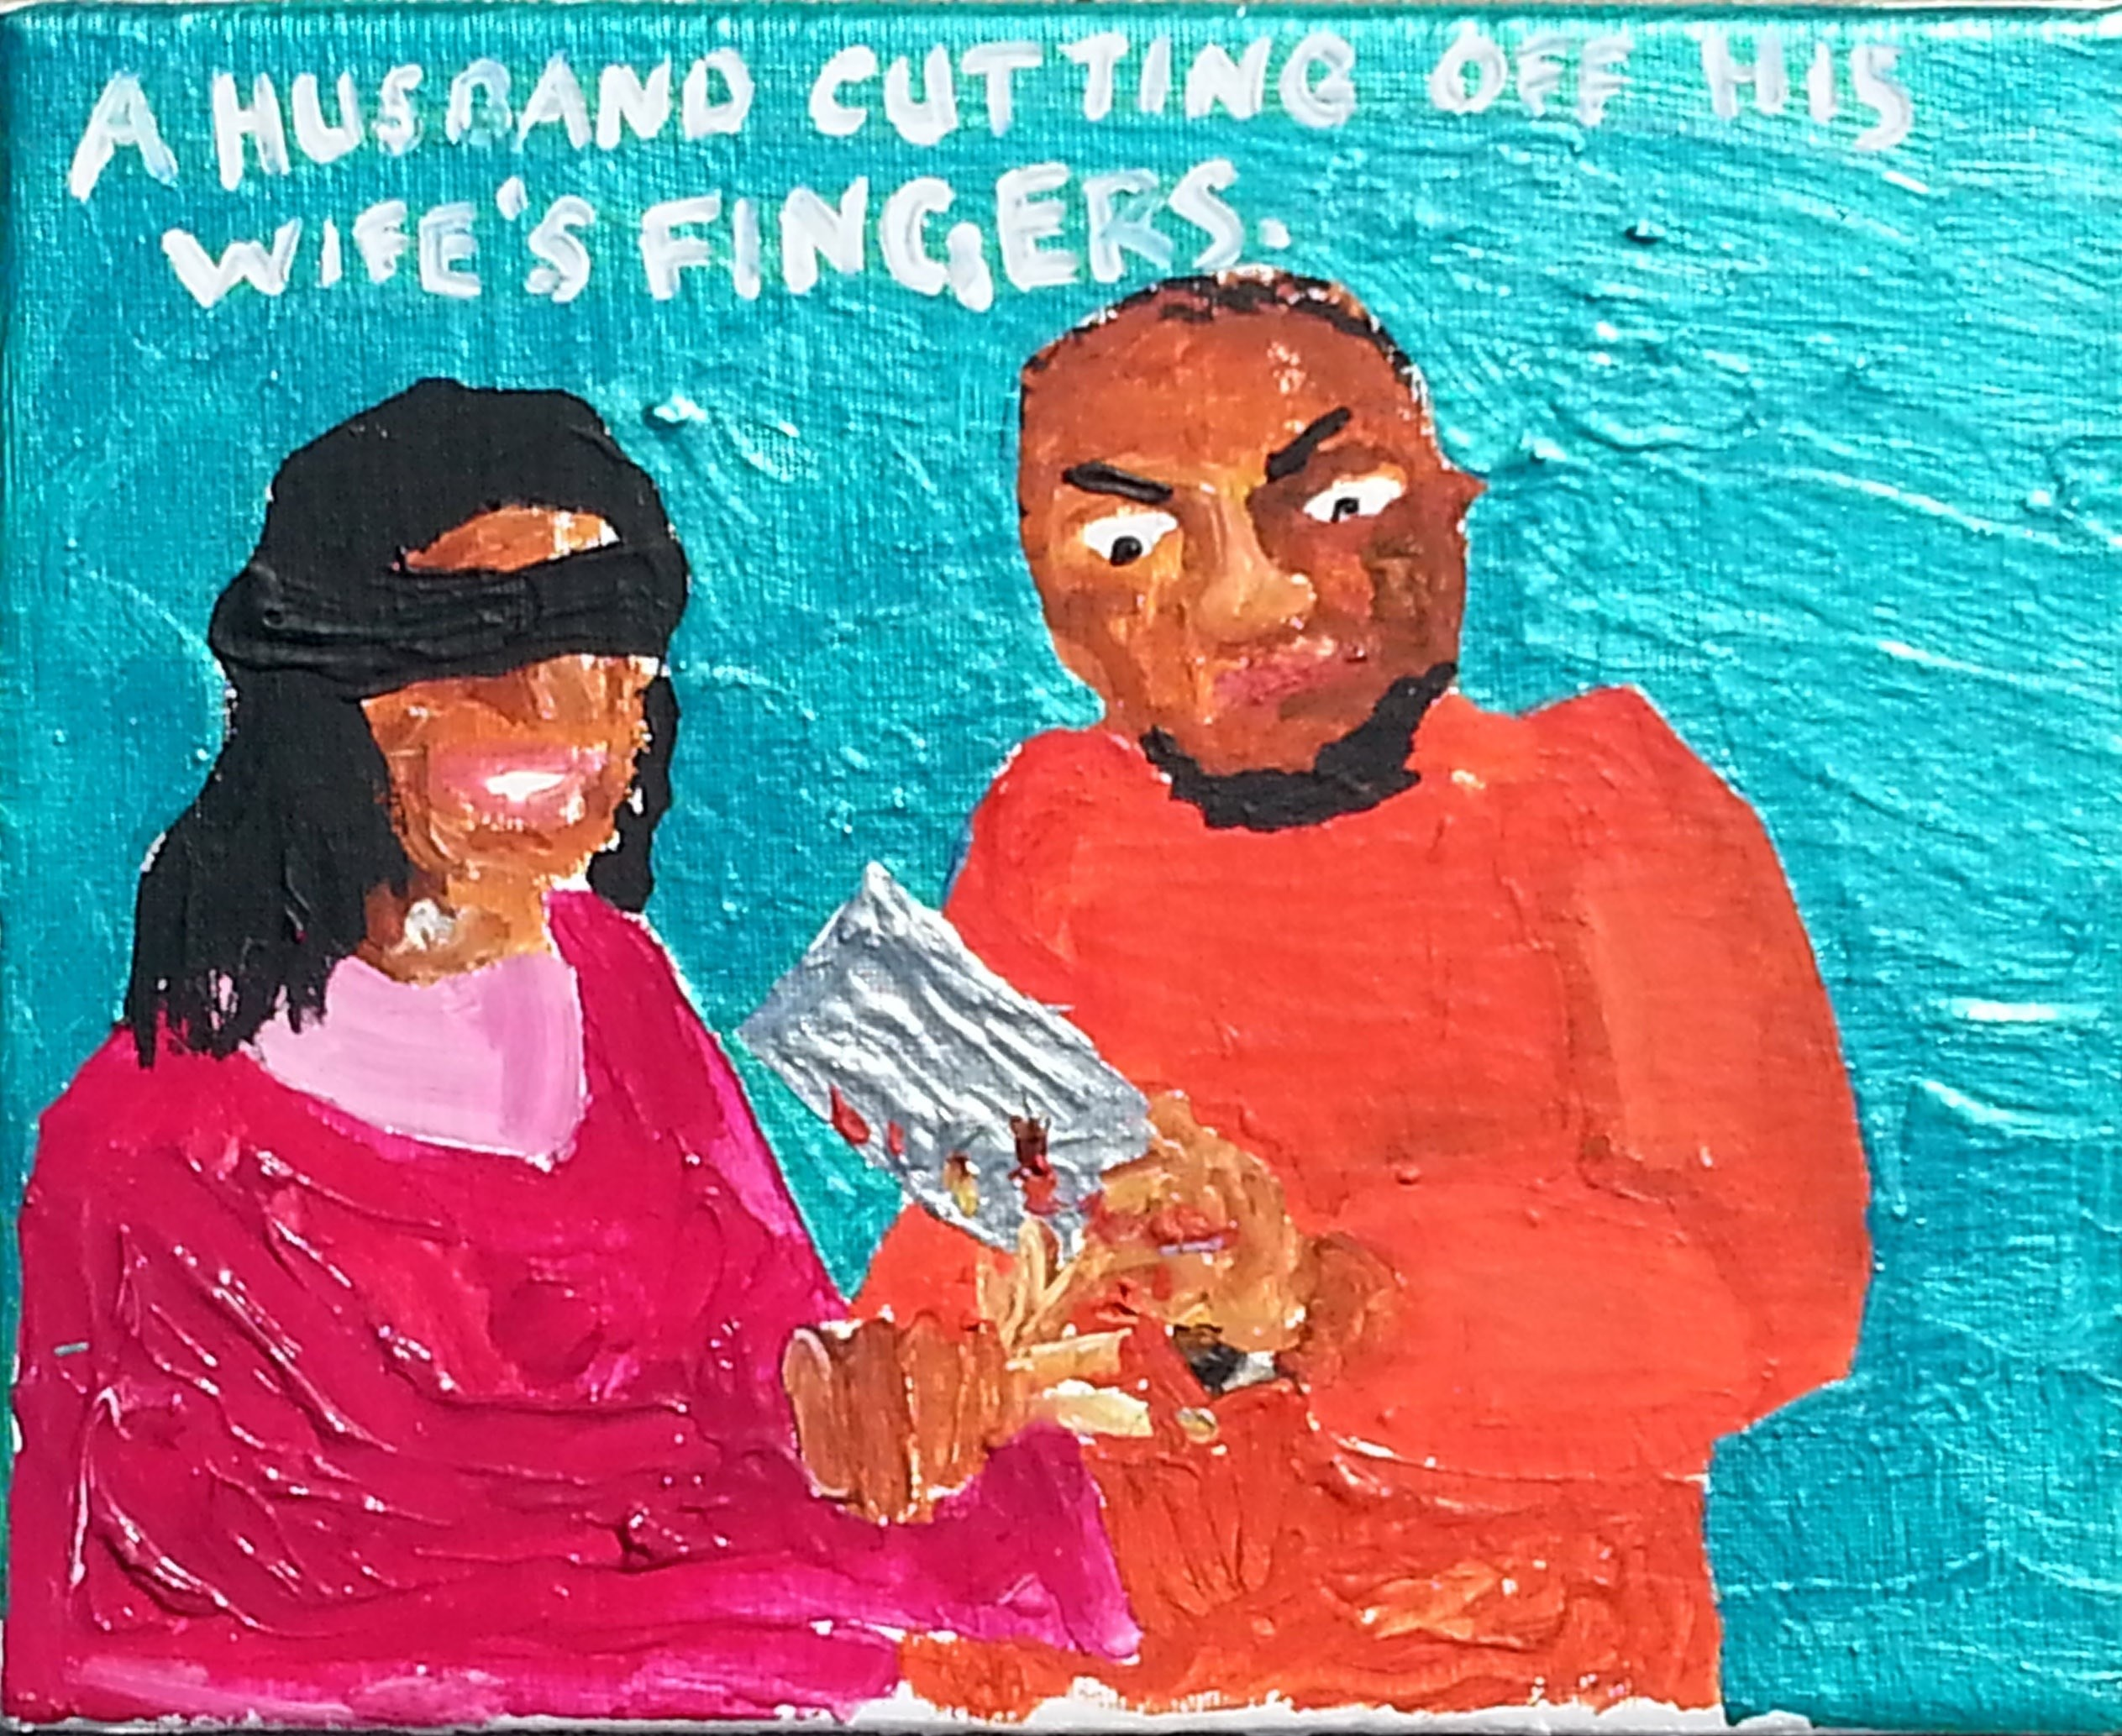 A husband cutting off his wife's fingers, Pintura Acrílico Vanguardia original por Jay Rechsteiner